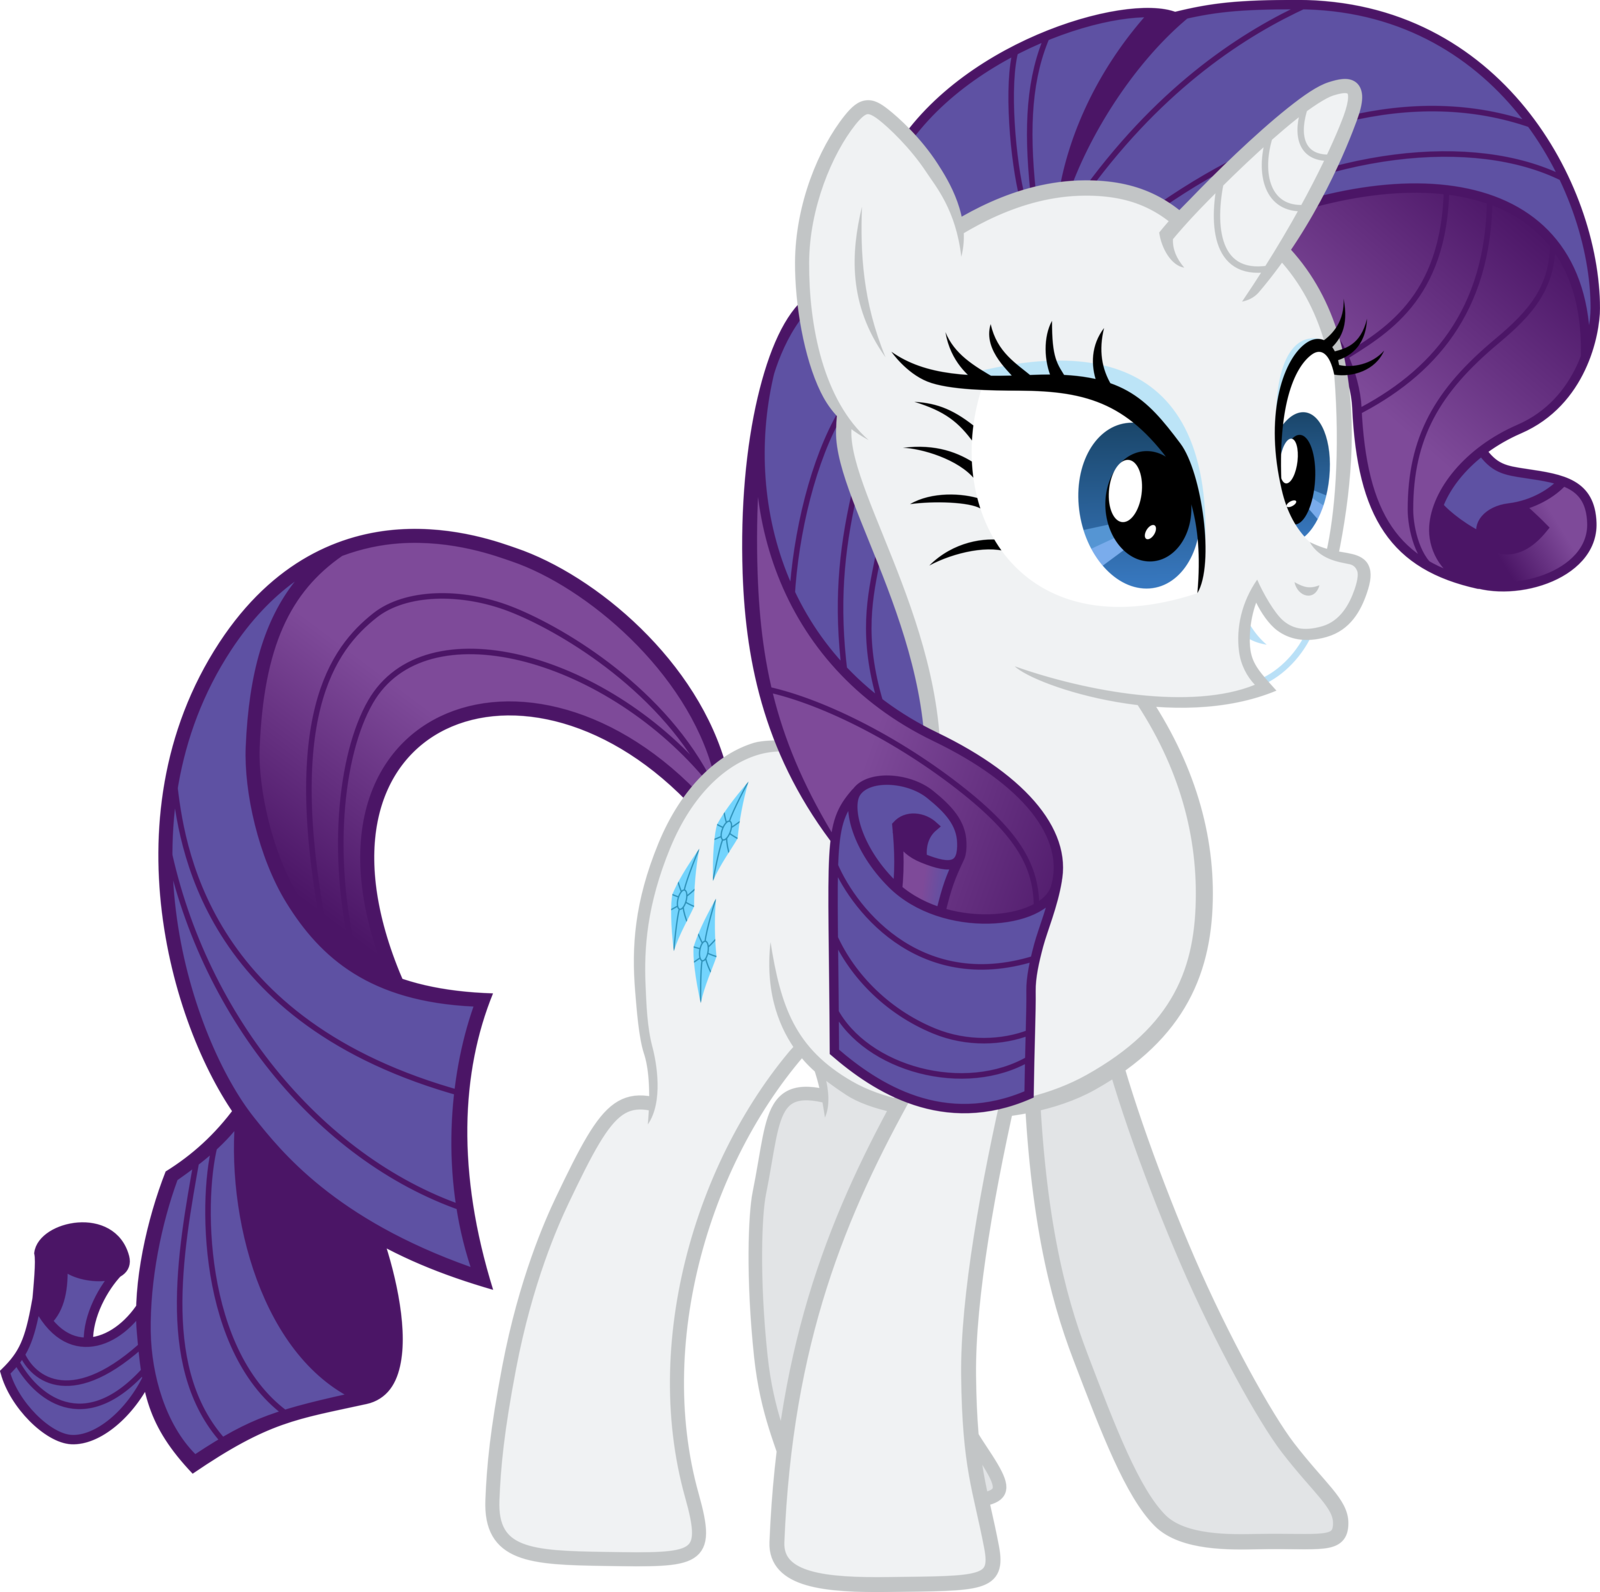 rarity___wonderful_news_by_iphstich-d5uq